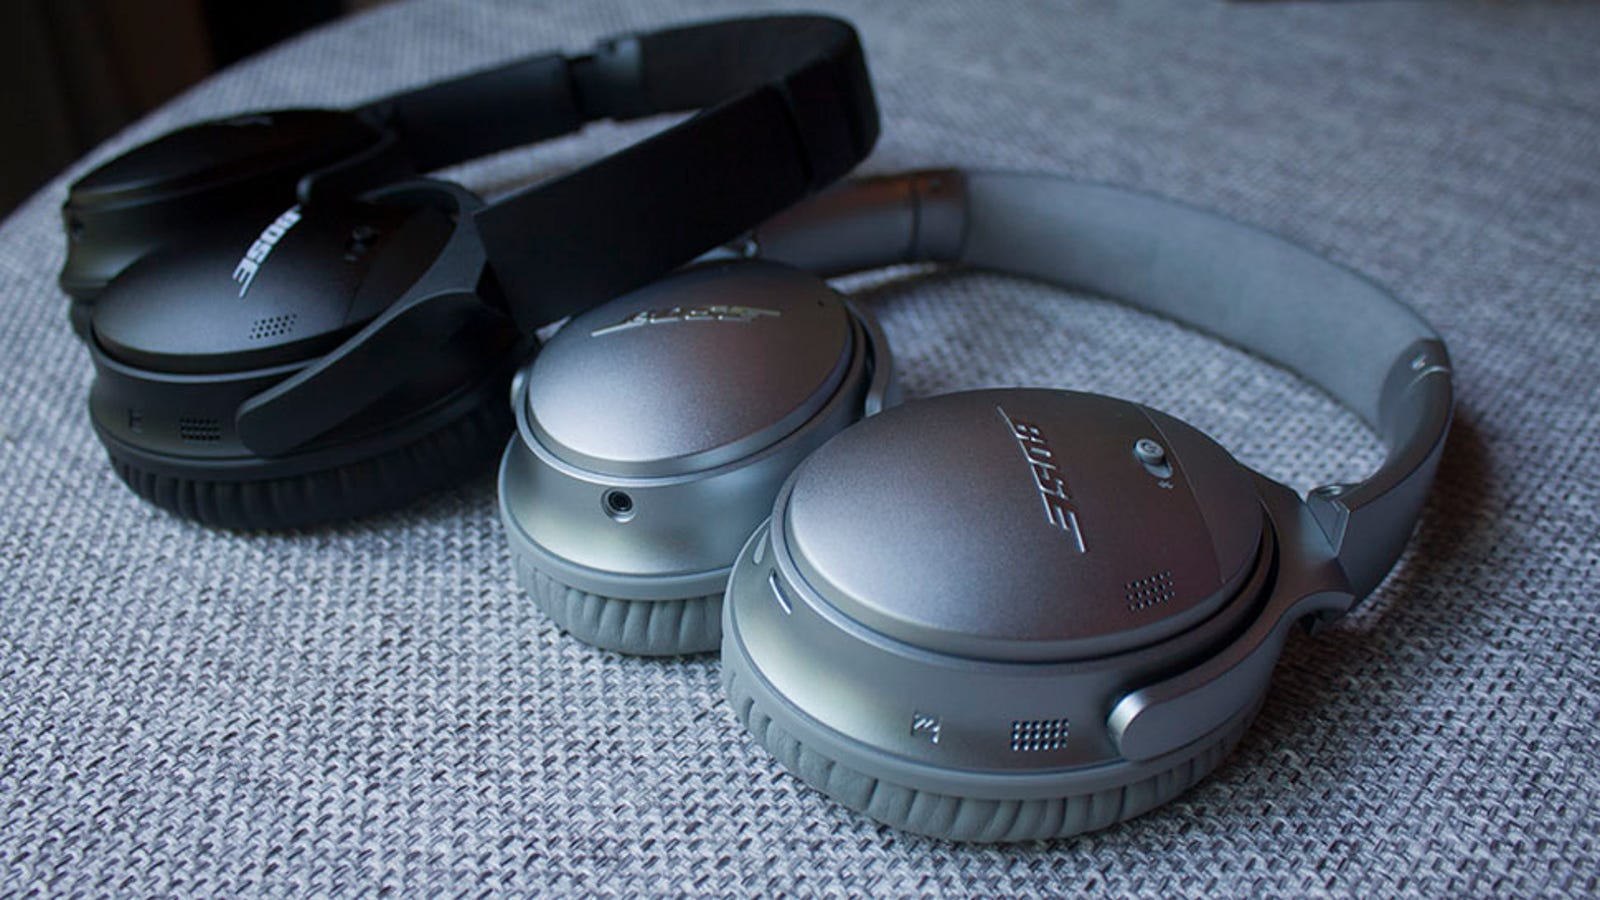 beats headphone cable green - Bose's Best Noise-Canceling Headphones Finally Go Wireless